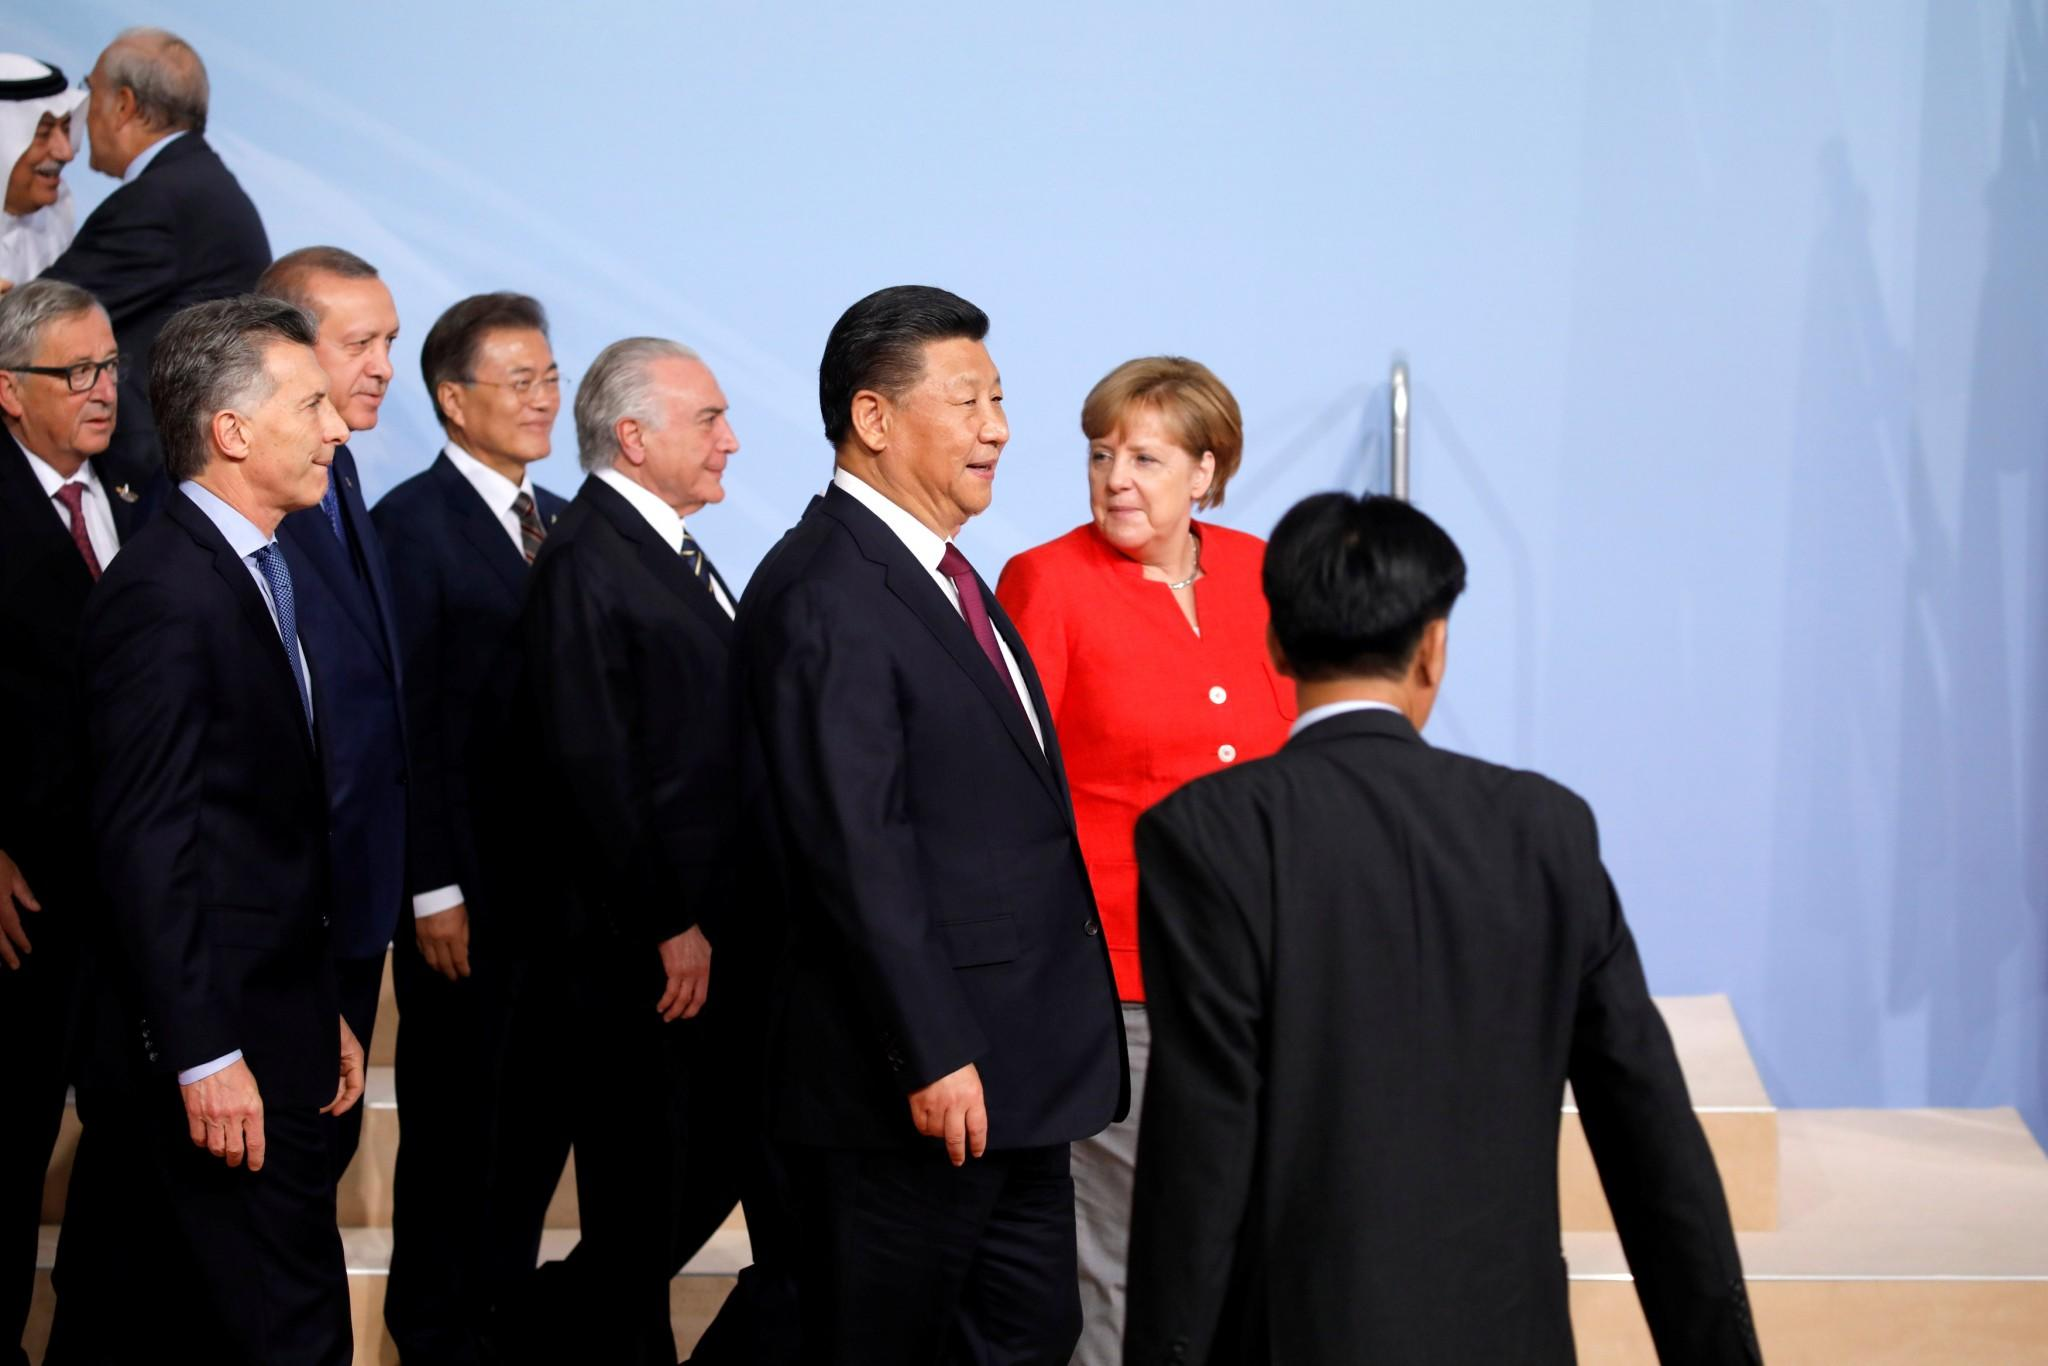 World leaders are meeting at the G20 summit in Hamburg